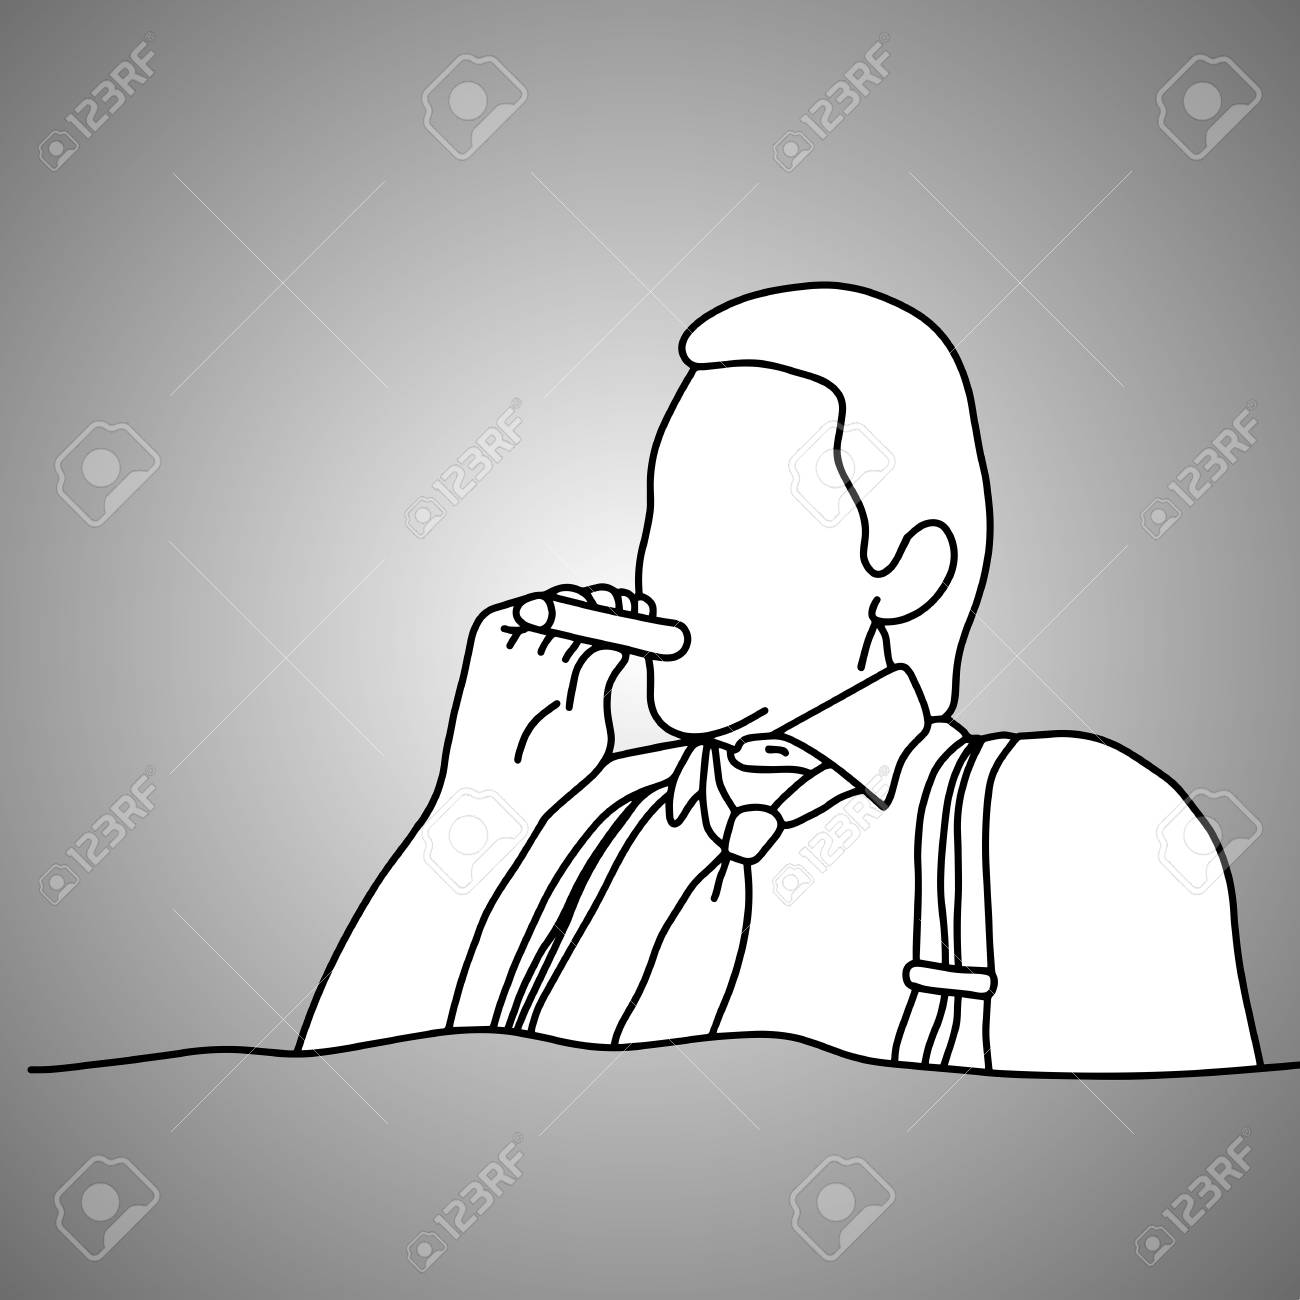 1300x1300 Businessman With Suspenders Or Braces Smoking Cigar Vector